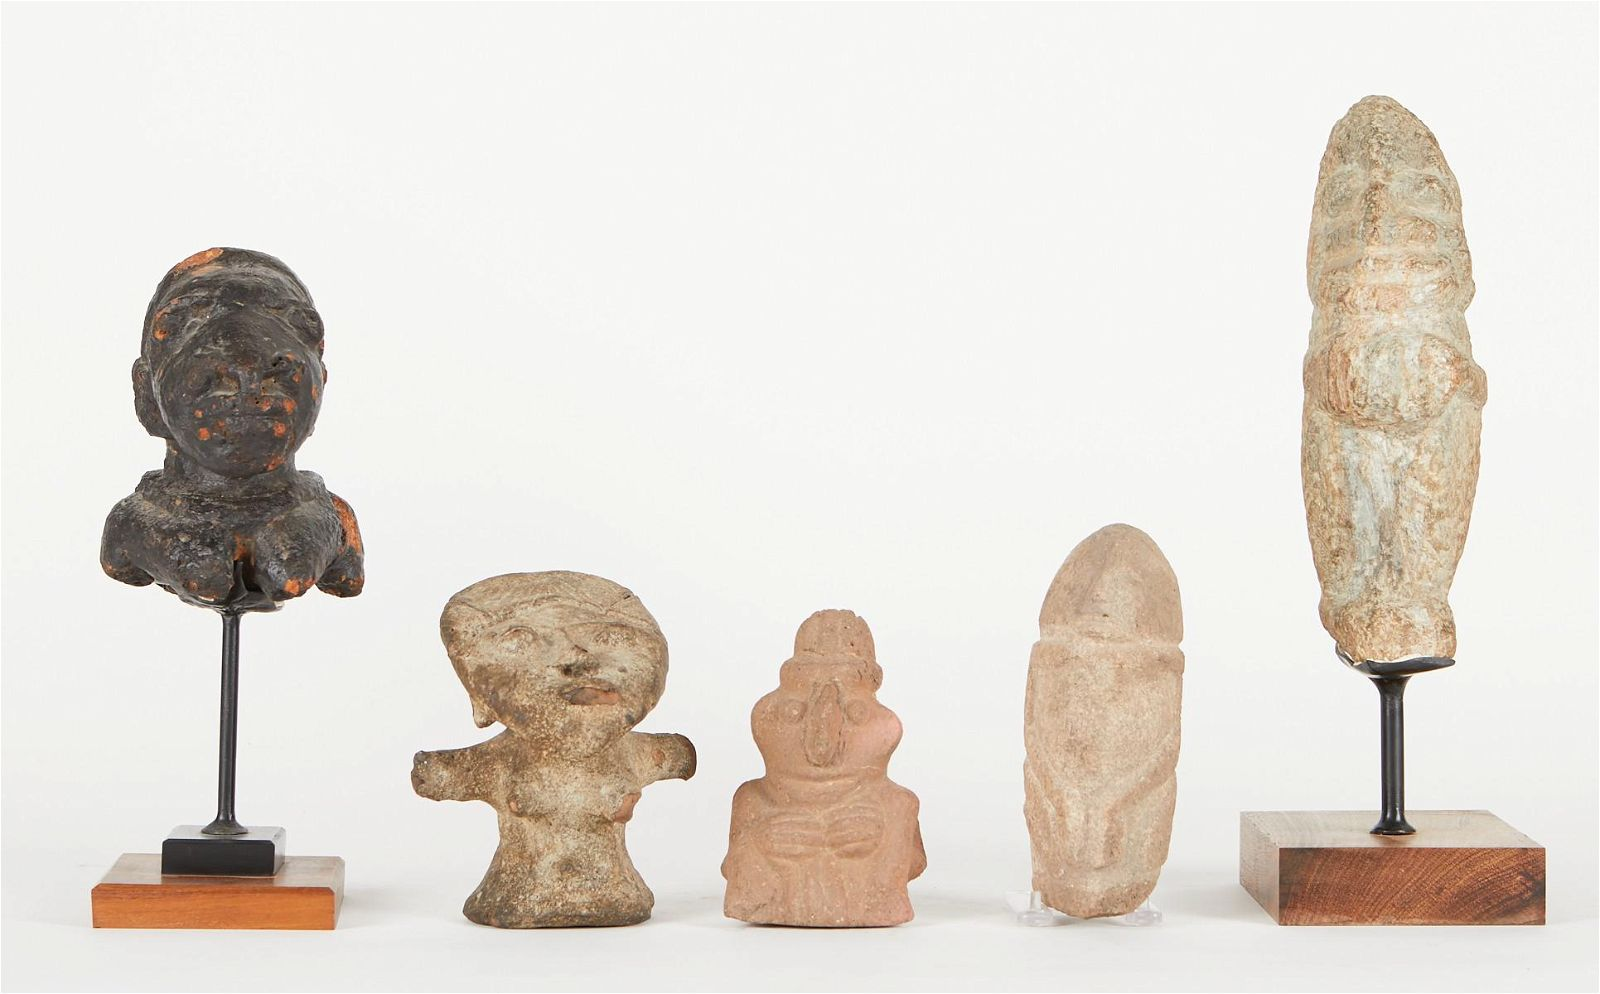 Grp: 5 20th c. African Stone Carvings